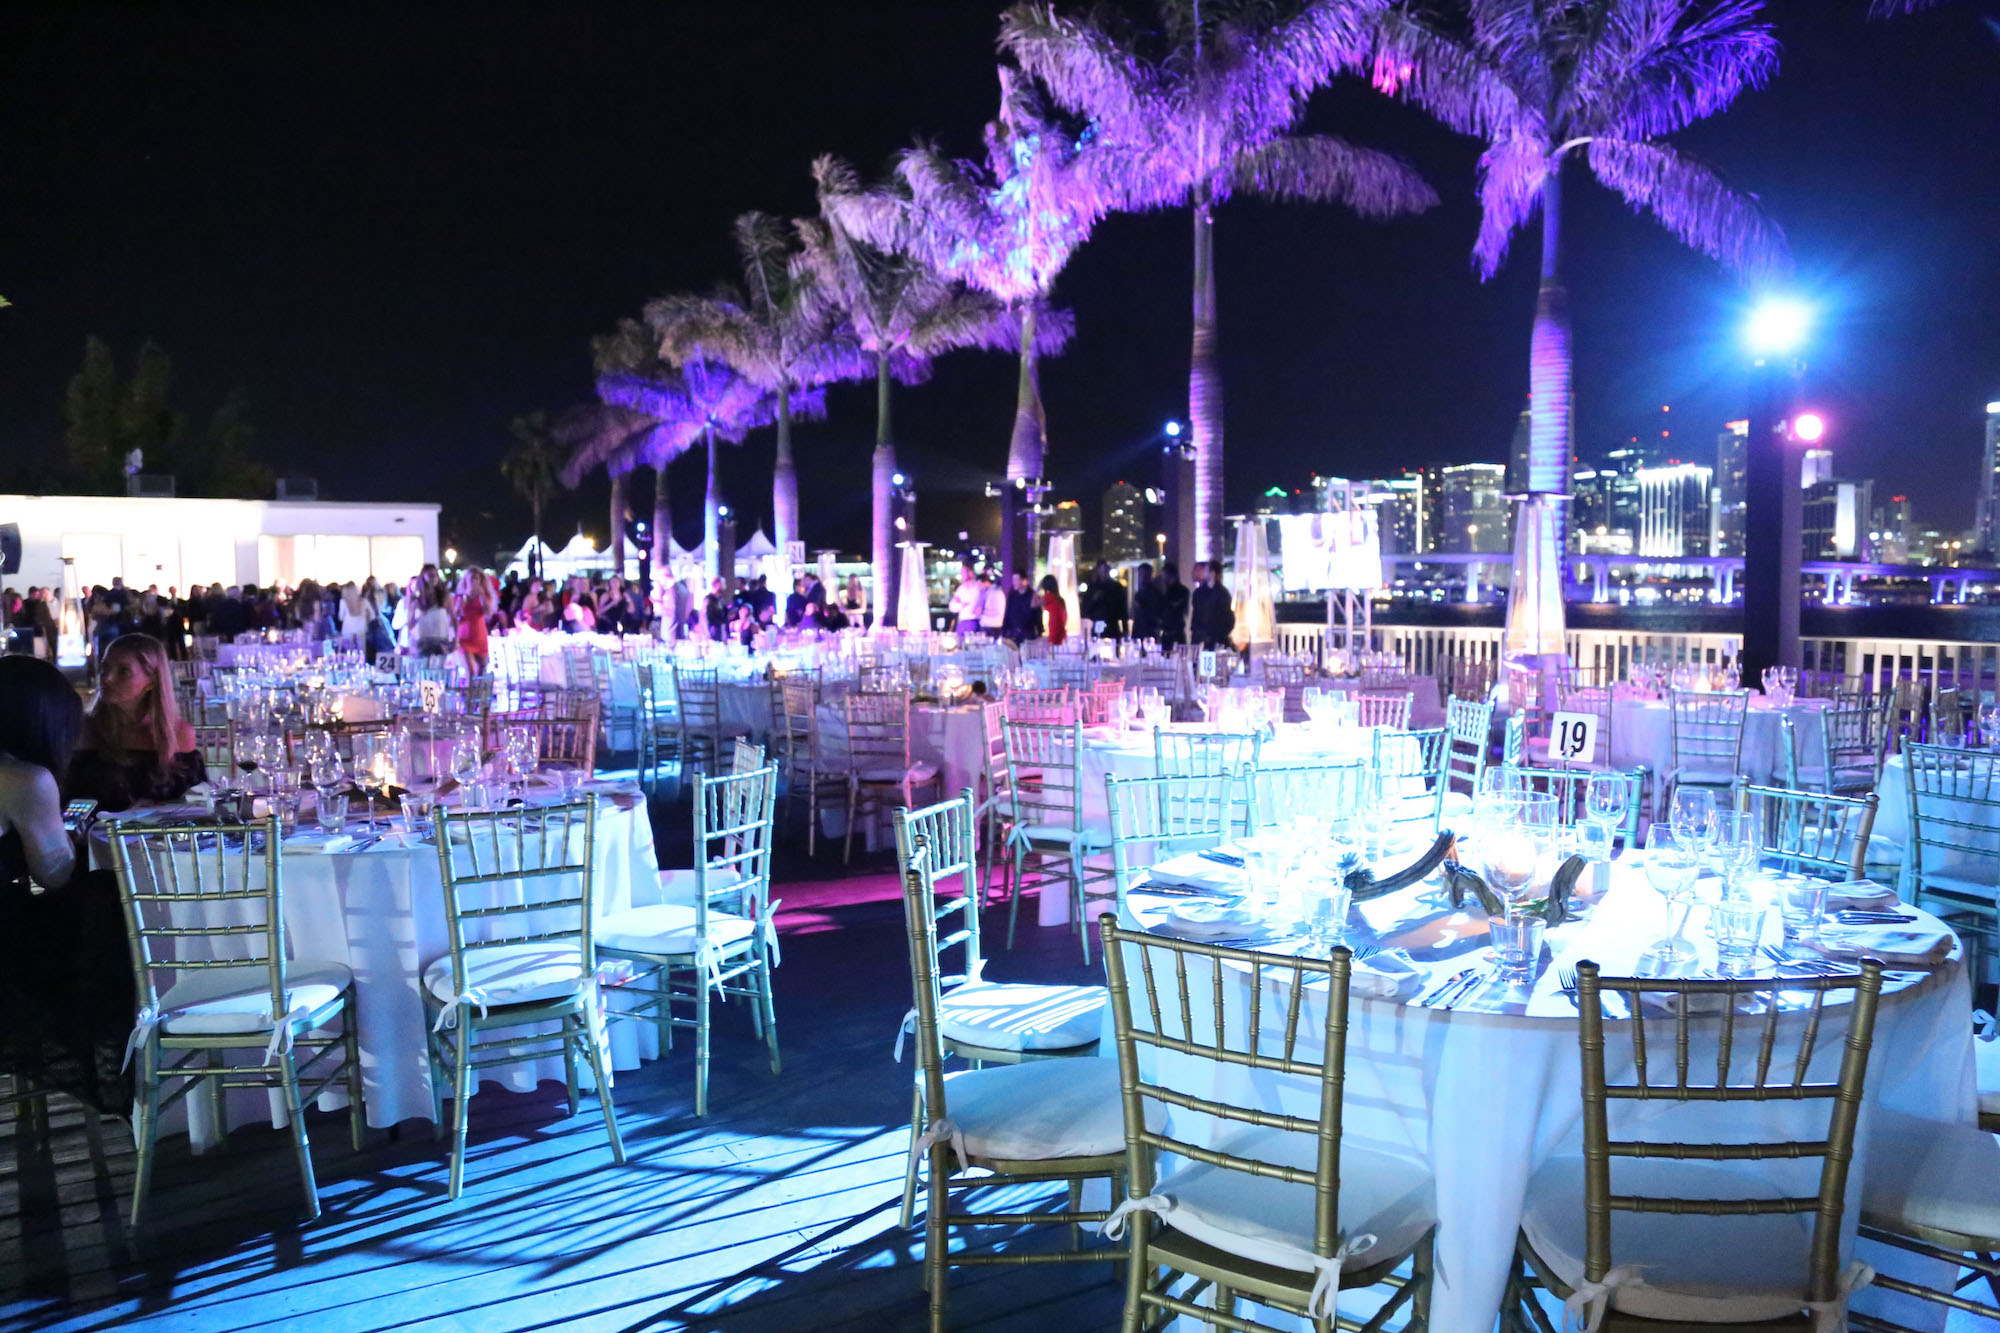 photo of tables outside by palm trees at night